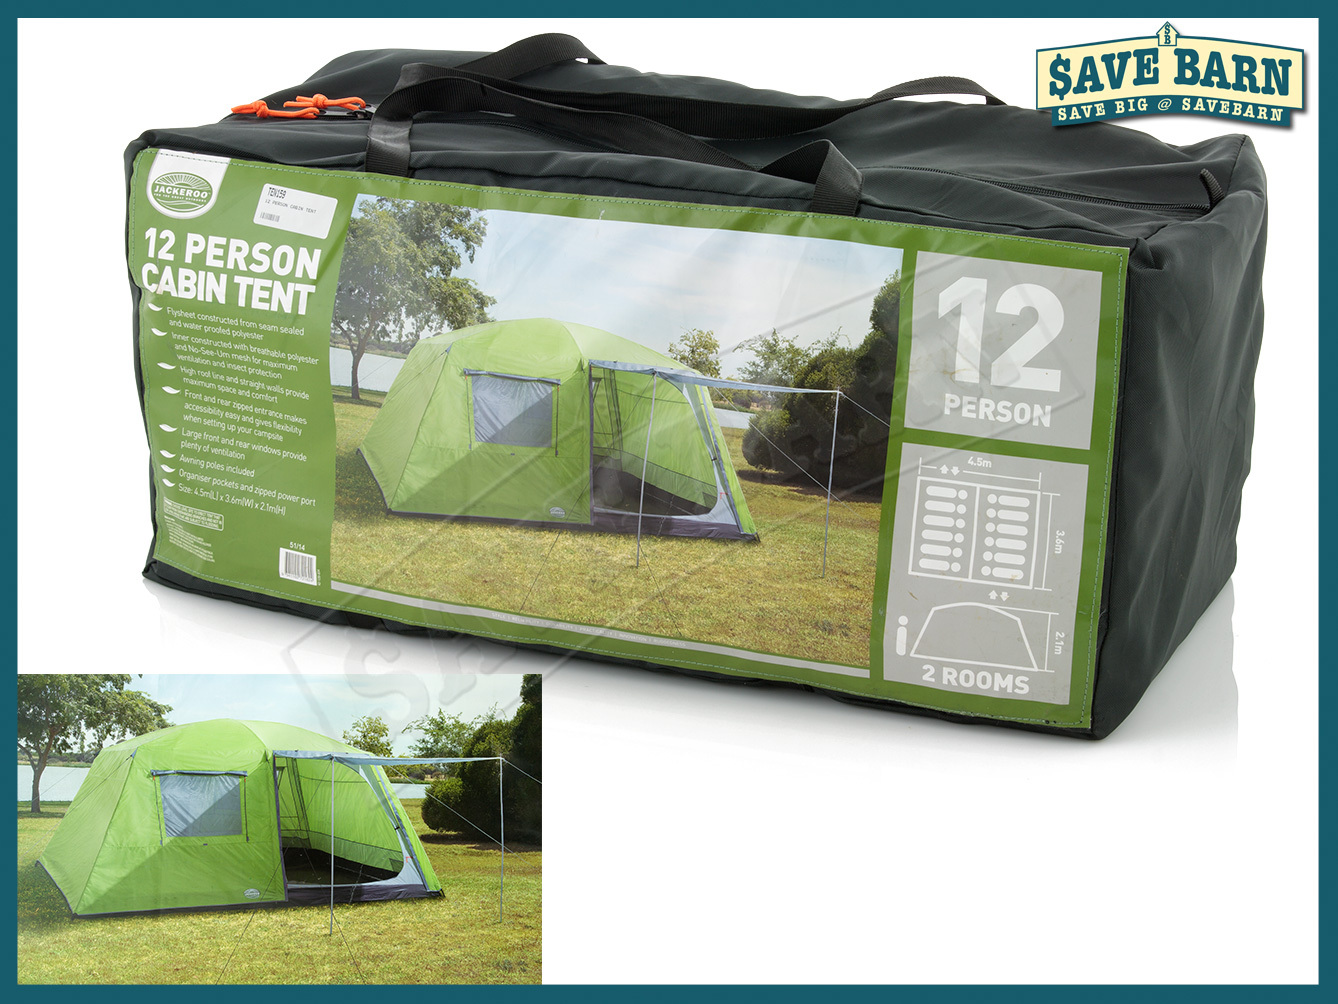 Click image to enlarge & savebarn - Cabin Tent 12 Person Tents with 2 Rooms u0026 Awning for sale!